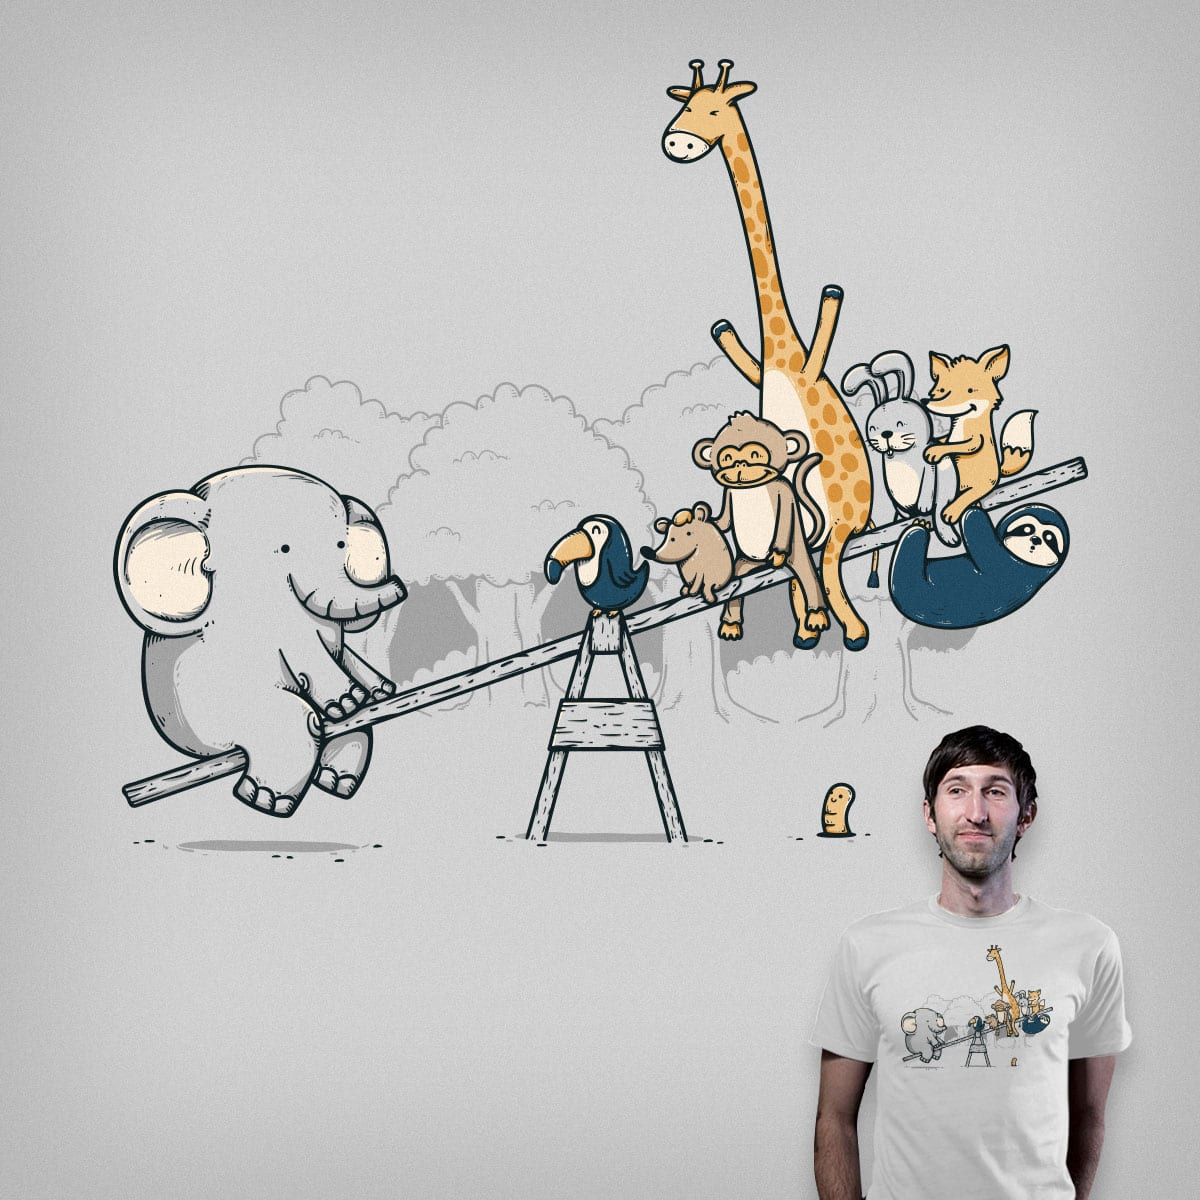 Balanced Ecosystem by Robo Rat and je14 on Threadless